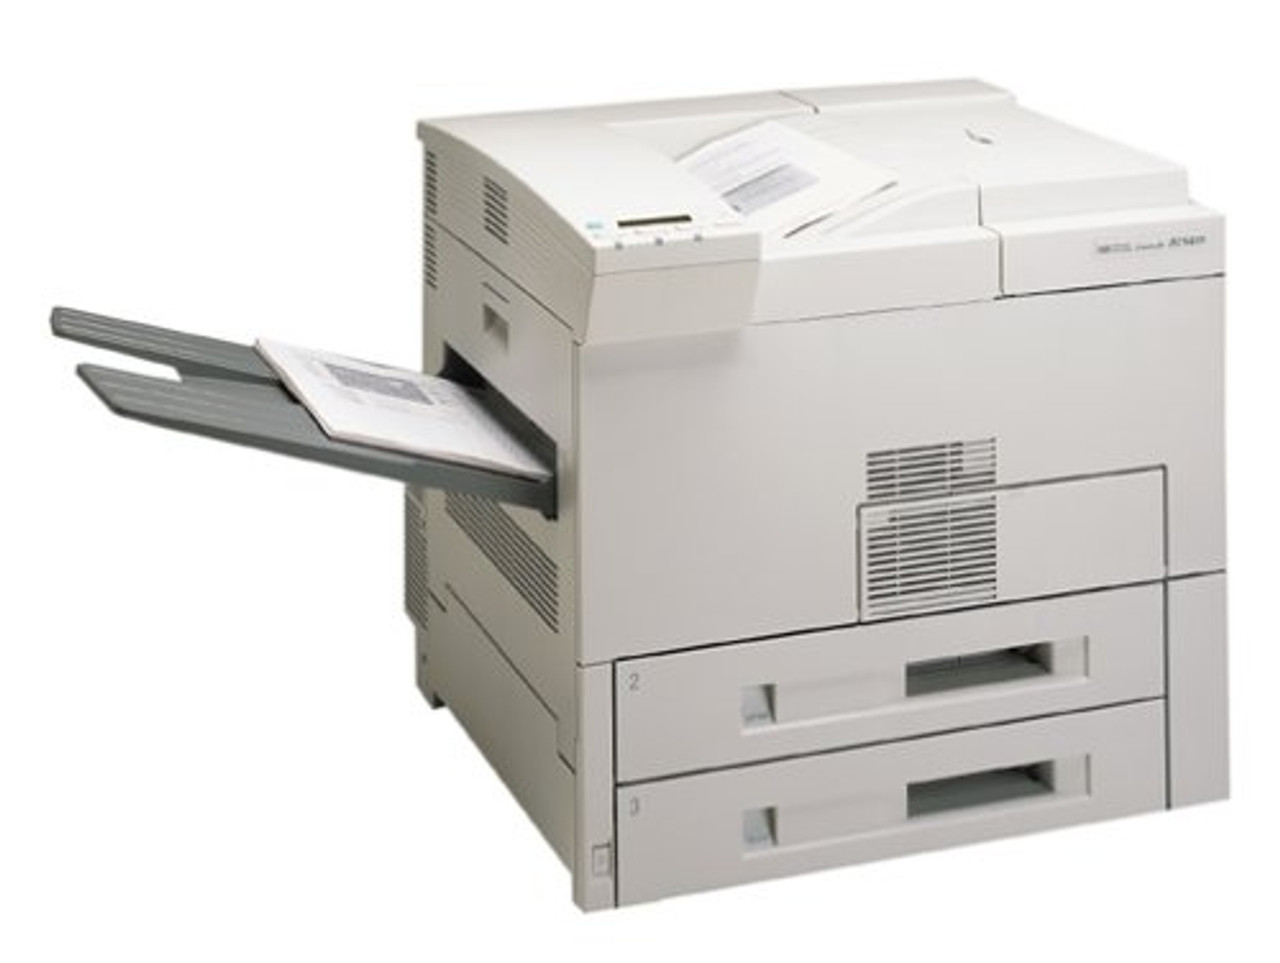 HP LaserJet 8000 Laser Printer